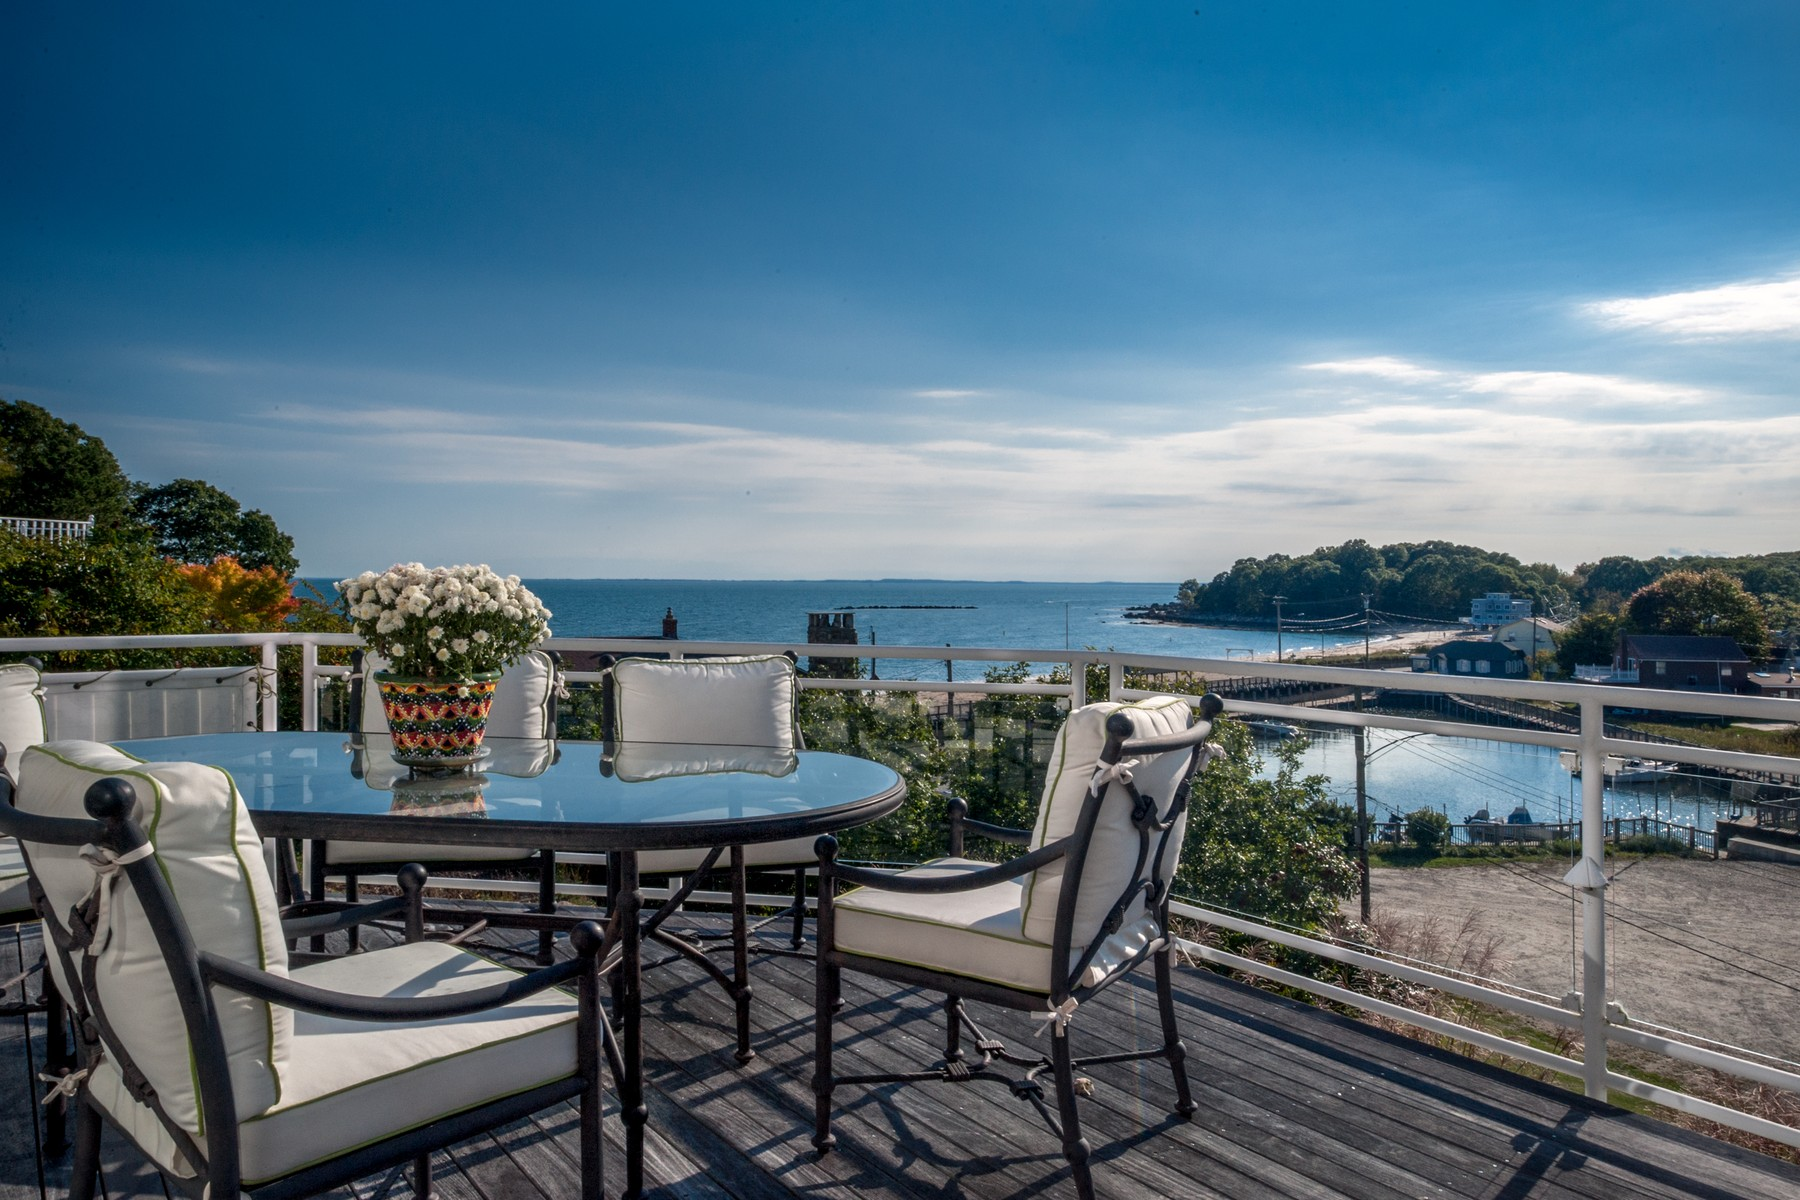 Casa Unifamiliar por un Venta en Enjoy amazing views of Long Island Sound and Orient Point 89 Hillcrest Road Old Lyme, Connecticut, 06371 Estados Unidos